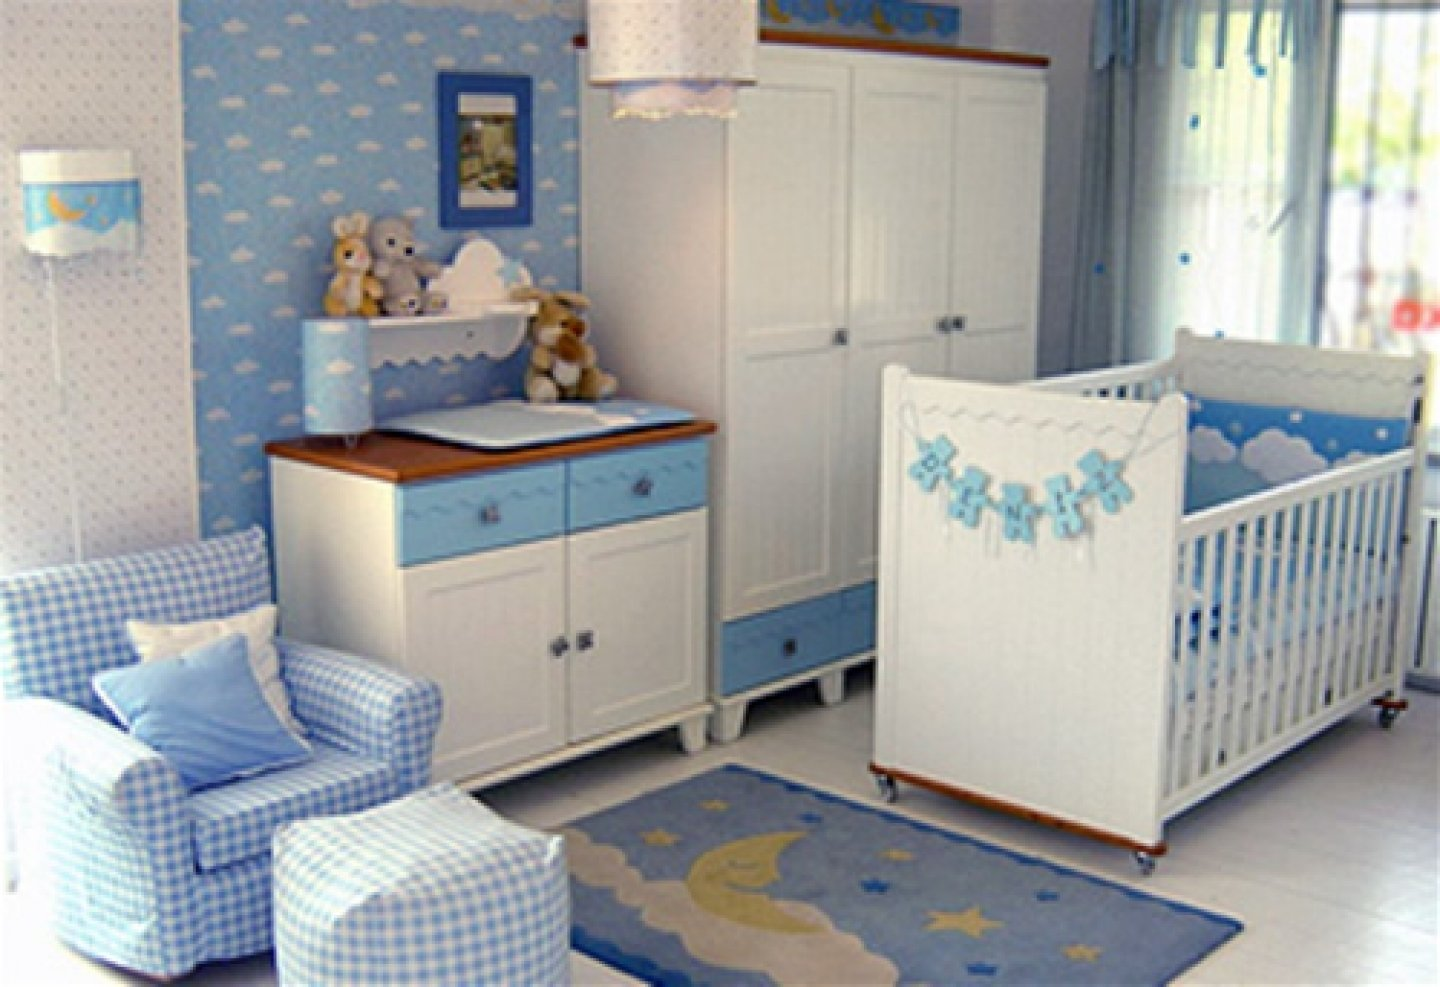 10 Unique Baby Boy Room Decor Ideas baby boy room decor ideas dma homes 25846 2020